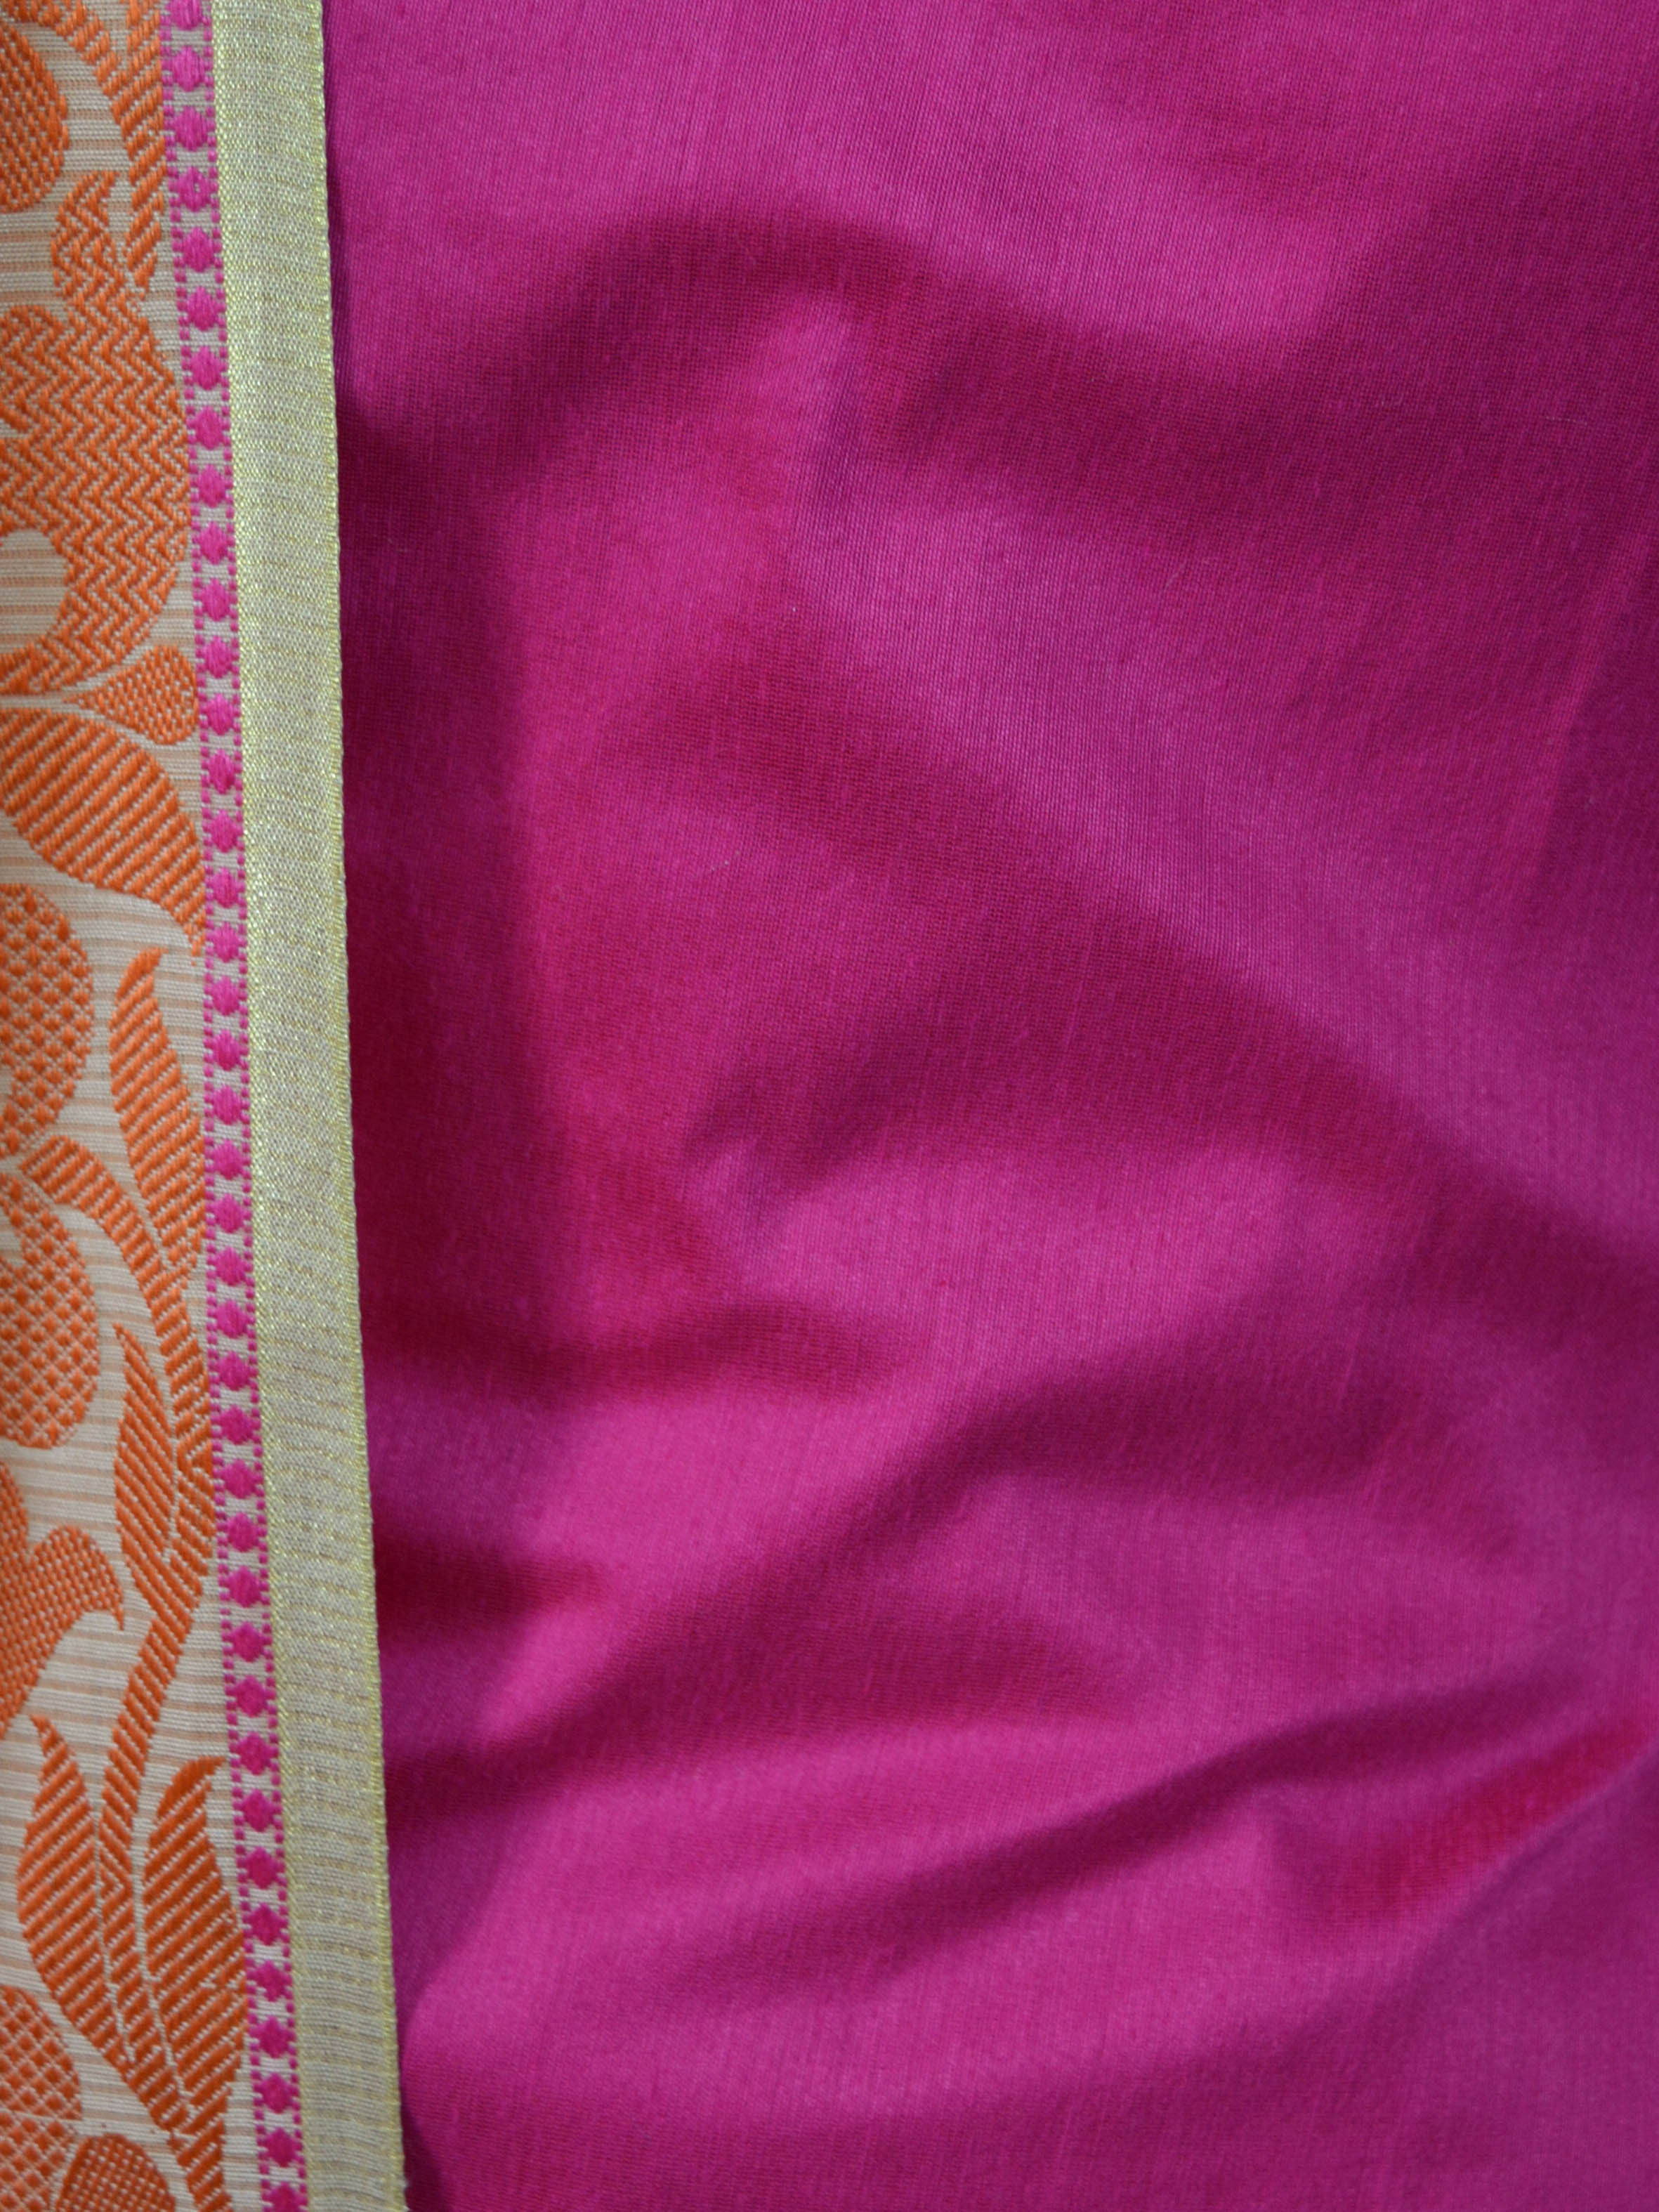 Banarasee Salwar Kameez Cotton Silk Fabric With Contrast Meena Border Dupatta-Pink